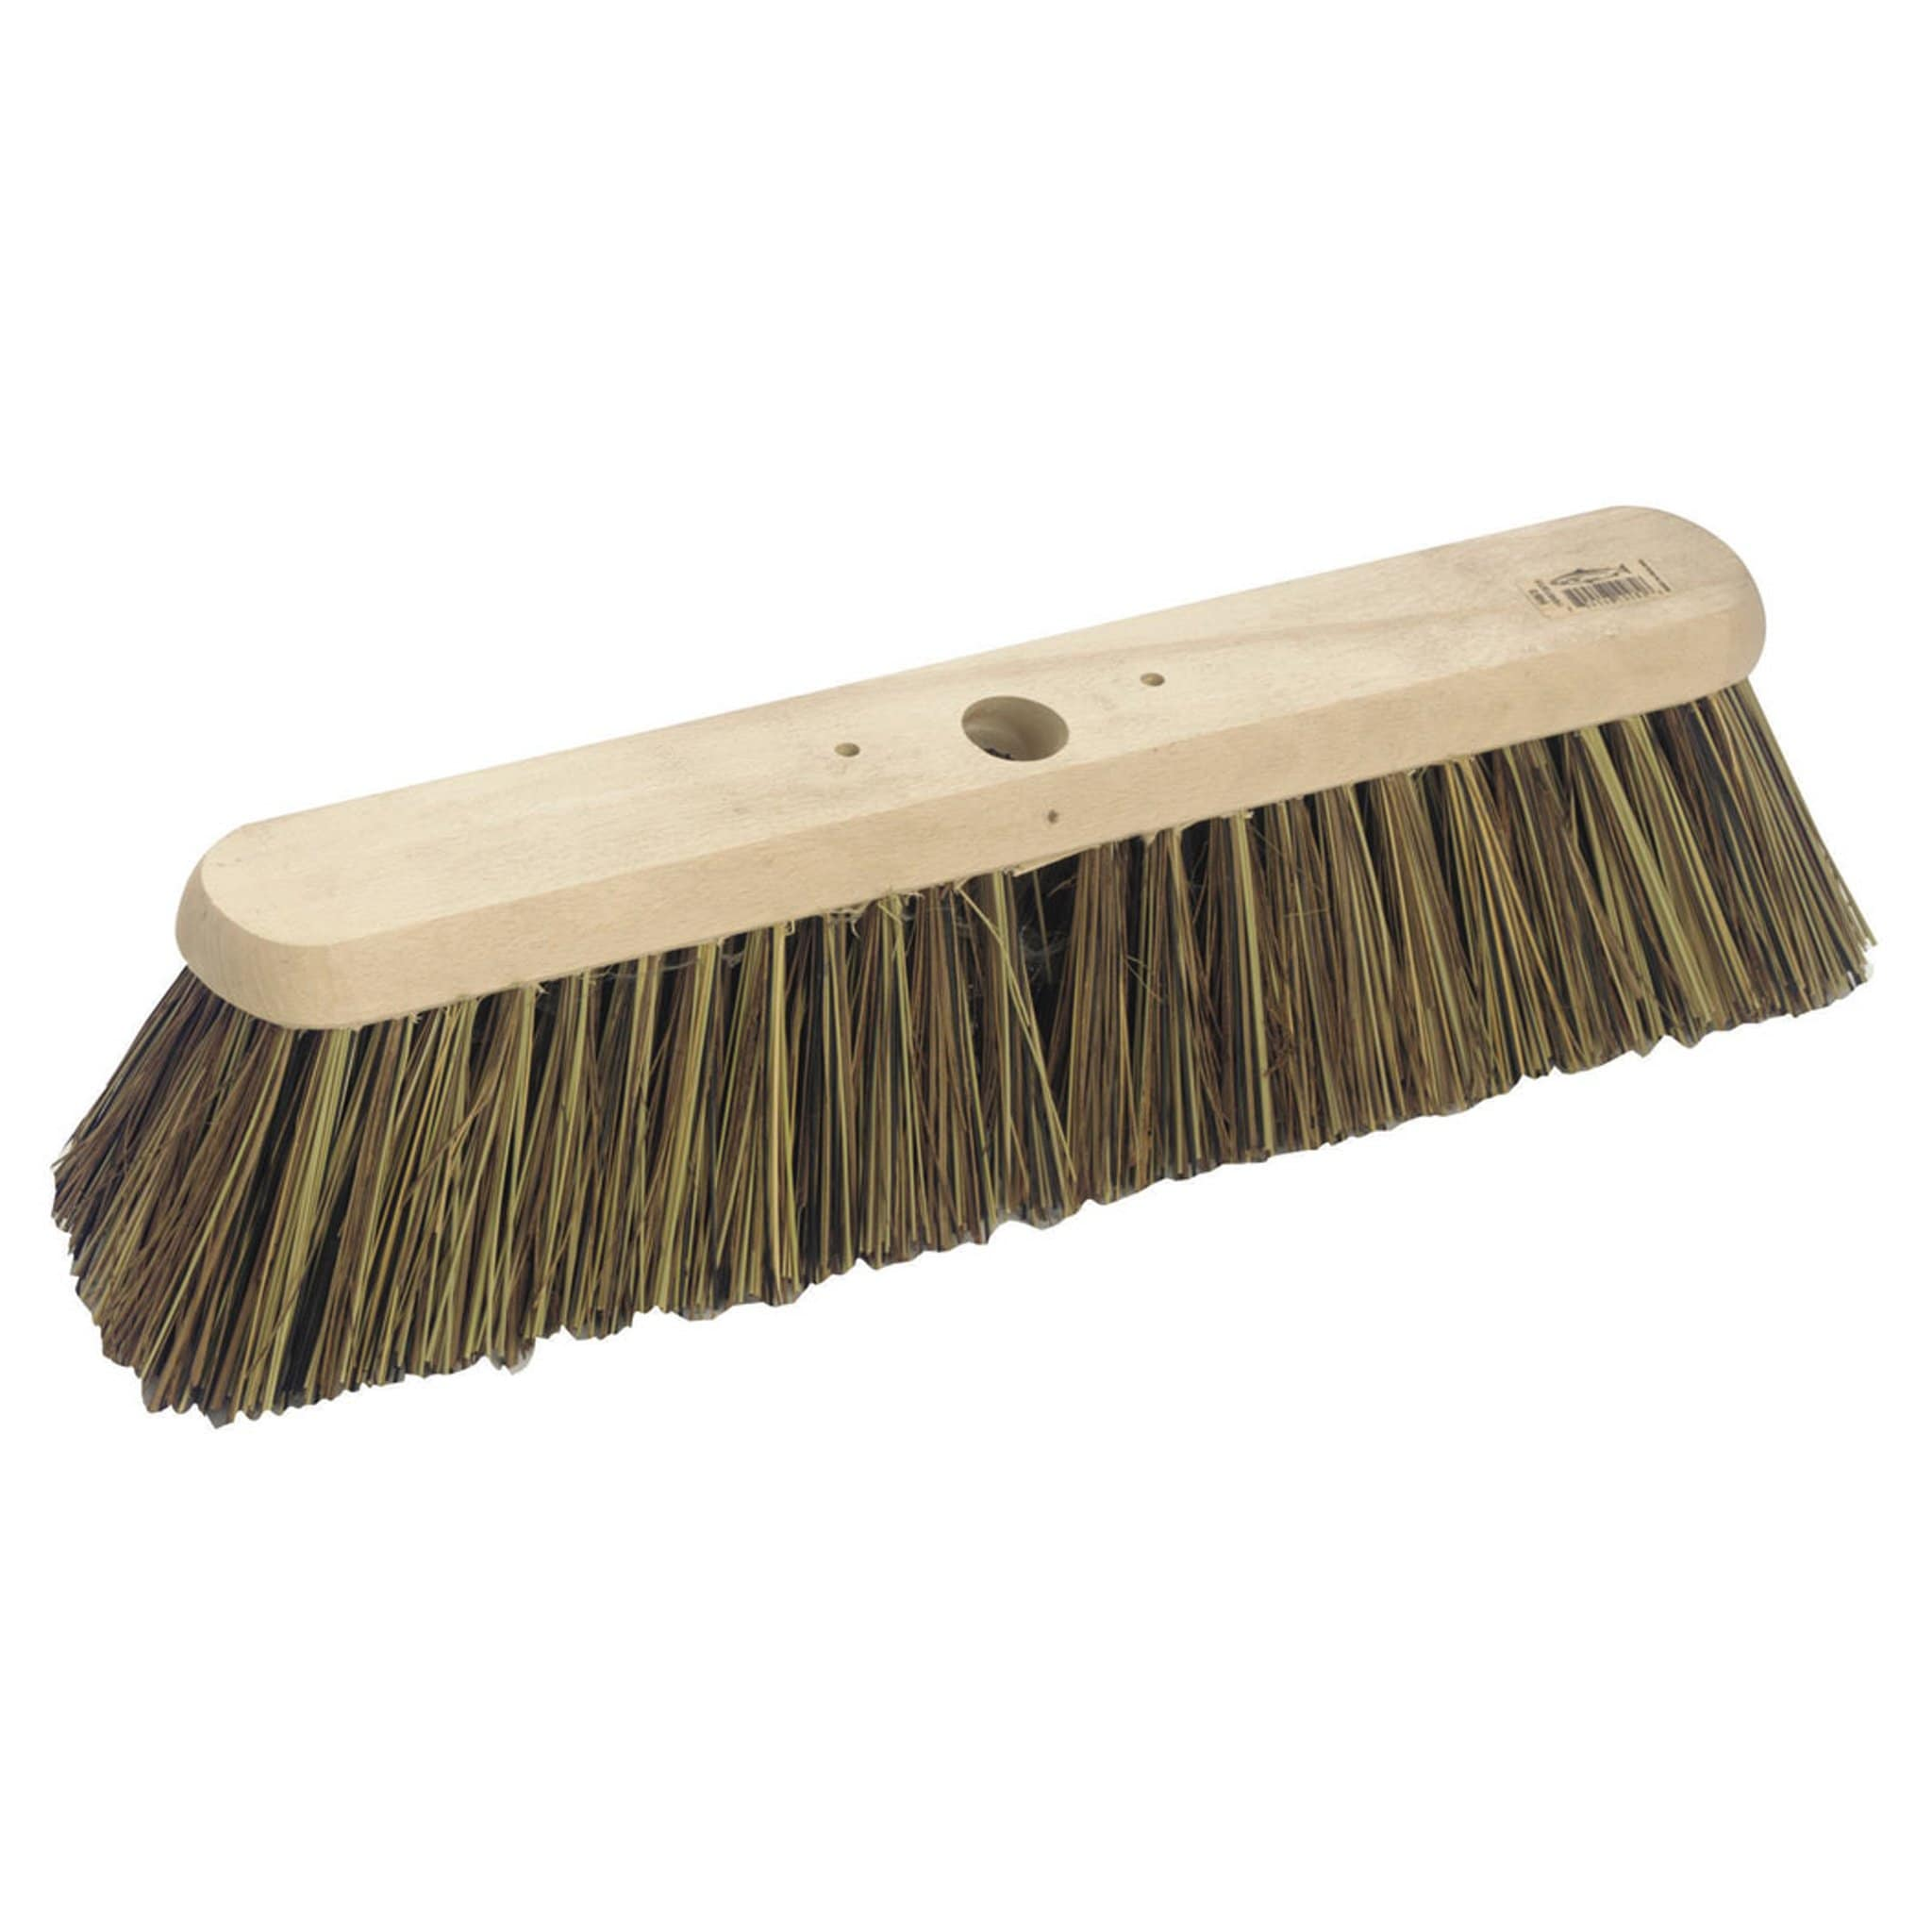 Hillbrush Platform Broom Head With Very Stiff Bristles